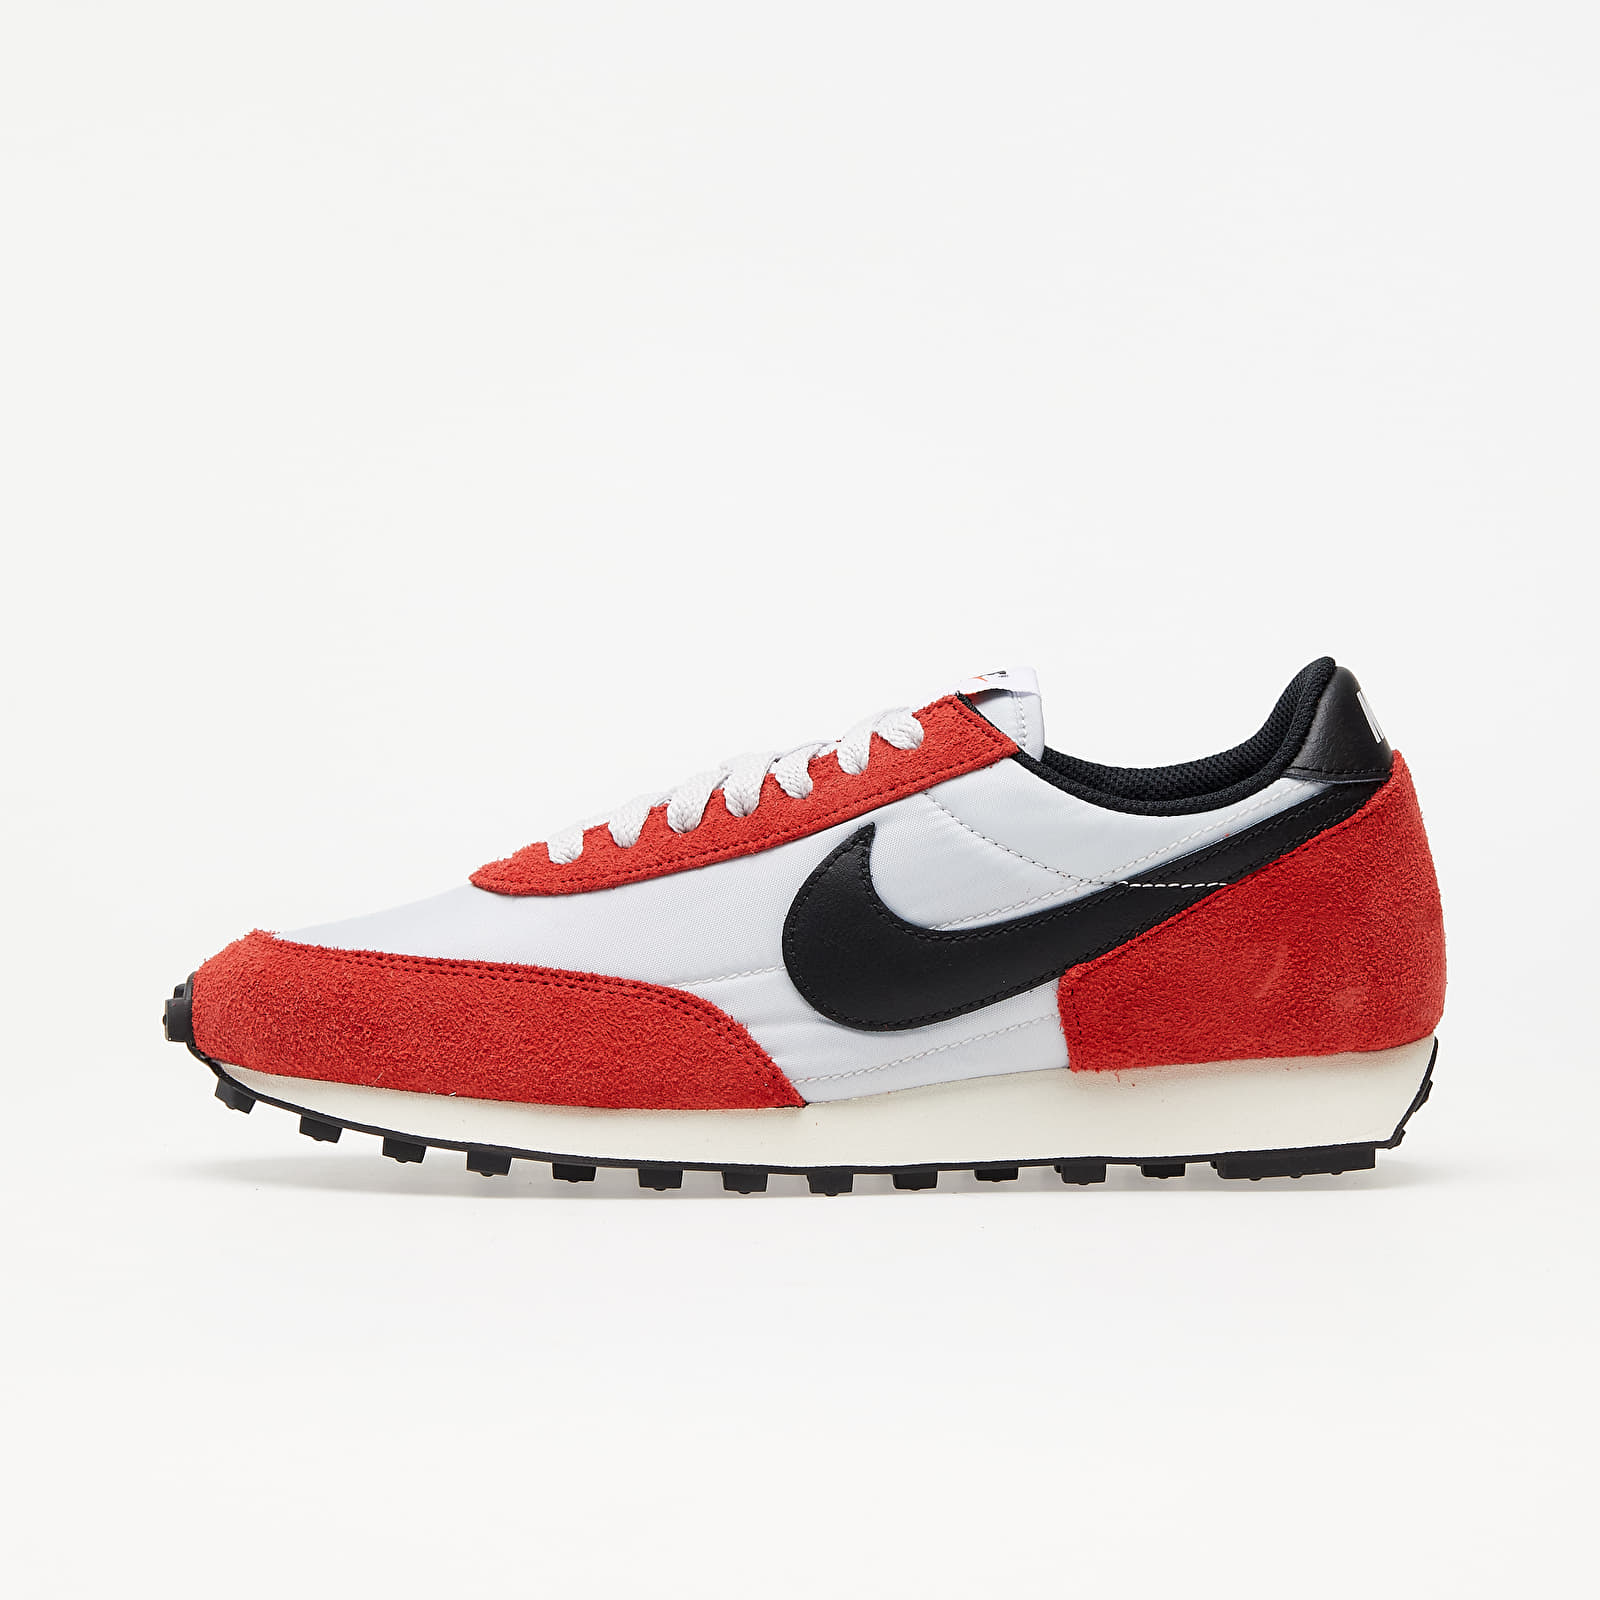 Nike Daybreak Pure Platinum/ Black-Gym Red-Sail EUR 44.5